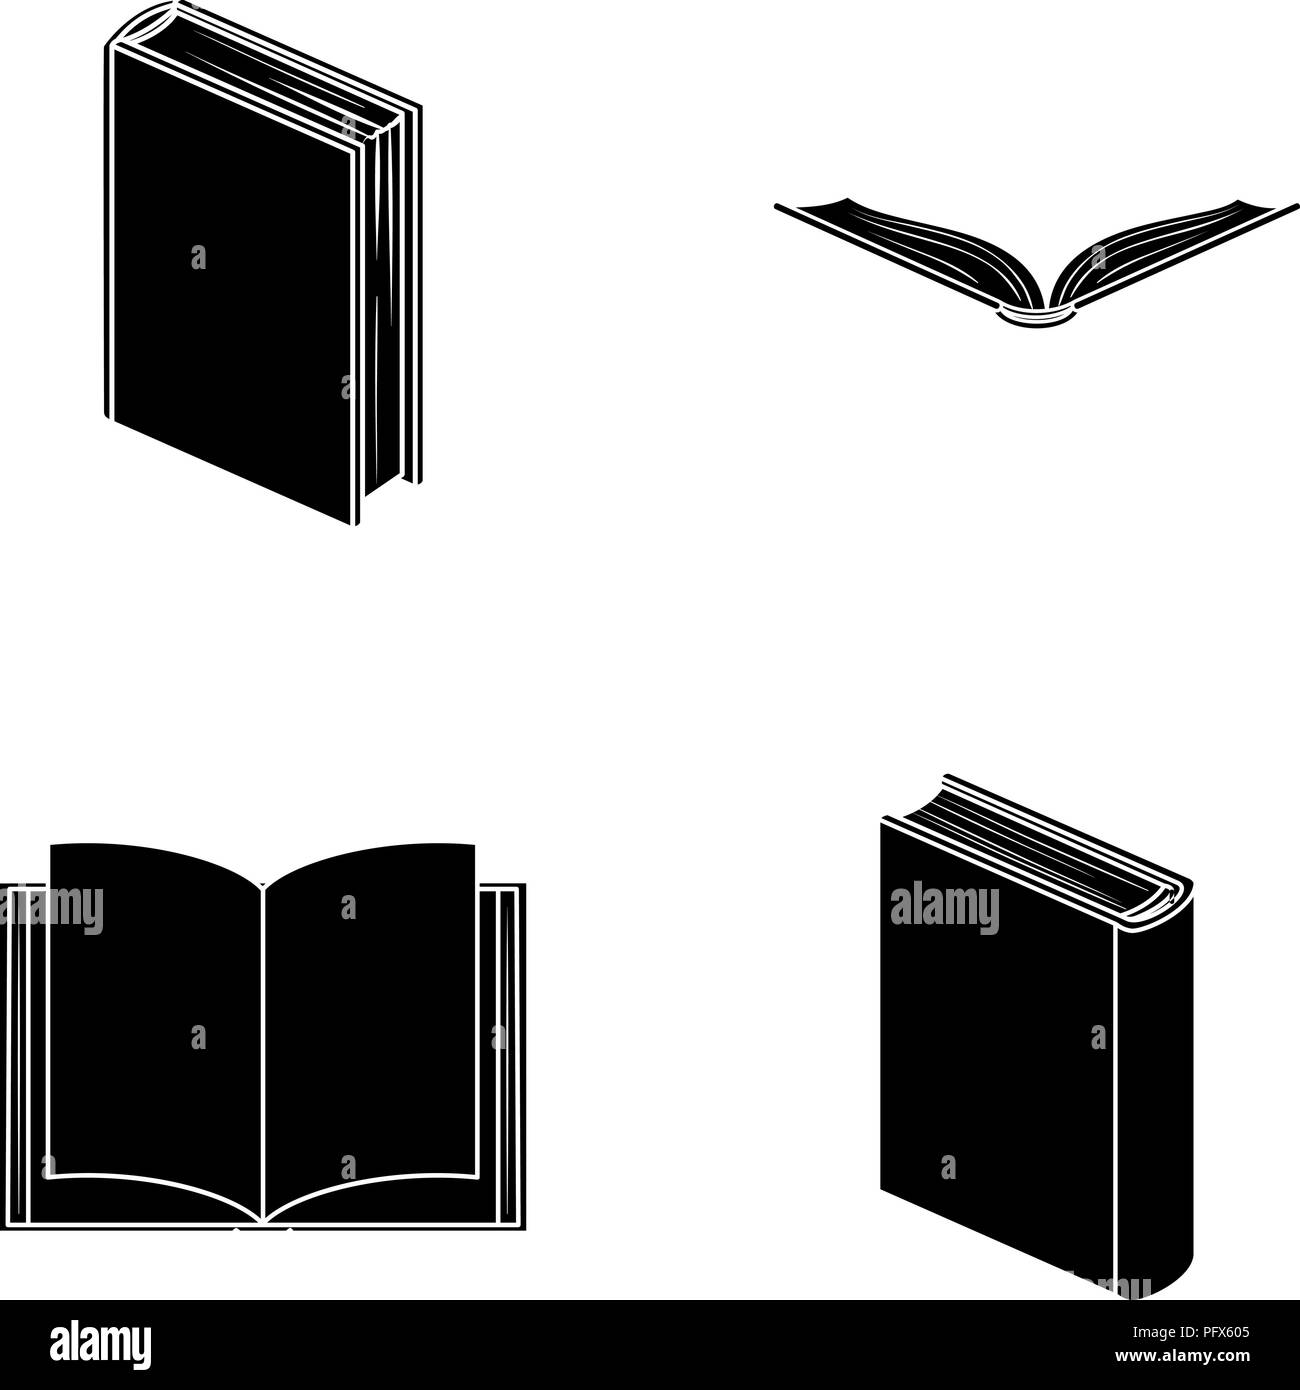 binding,black,book,books,closed,collection,different,icon,illustration,incographia,isolated,library,lies,literature,logo,novel,open,printing,reading,school,set,sign,stack,study,symbol,textbook,types,typography,vector,web,worth, Vector Vectors , Stock Vector